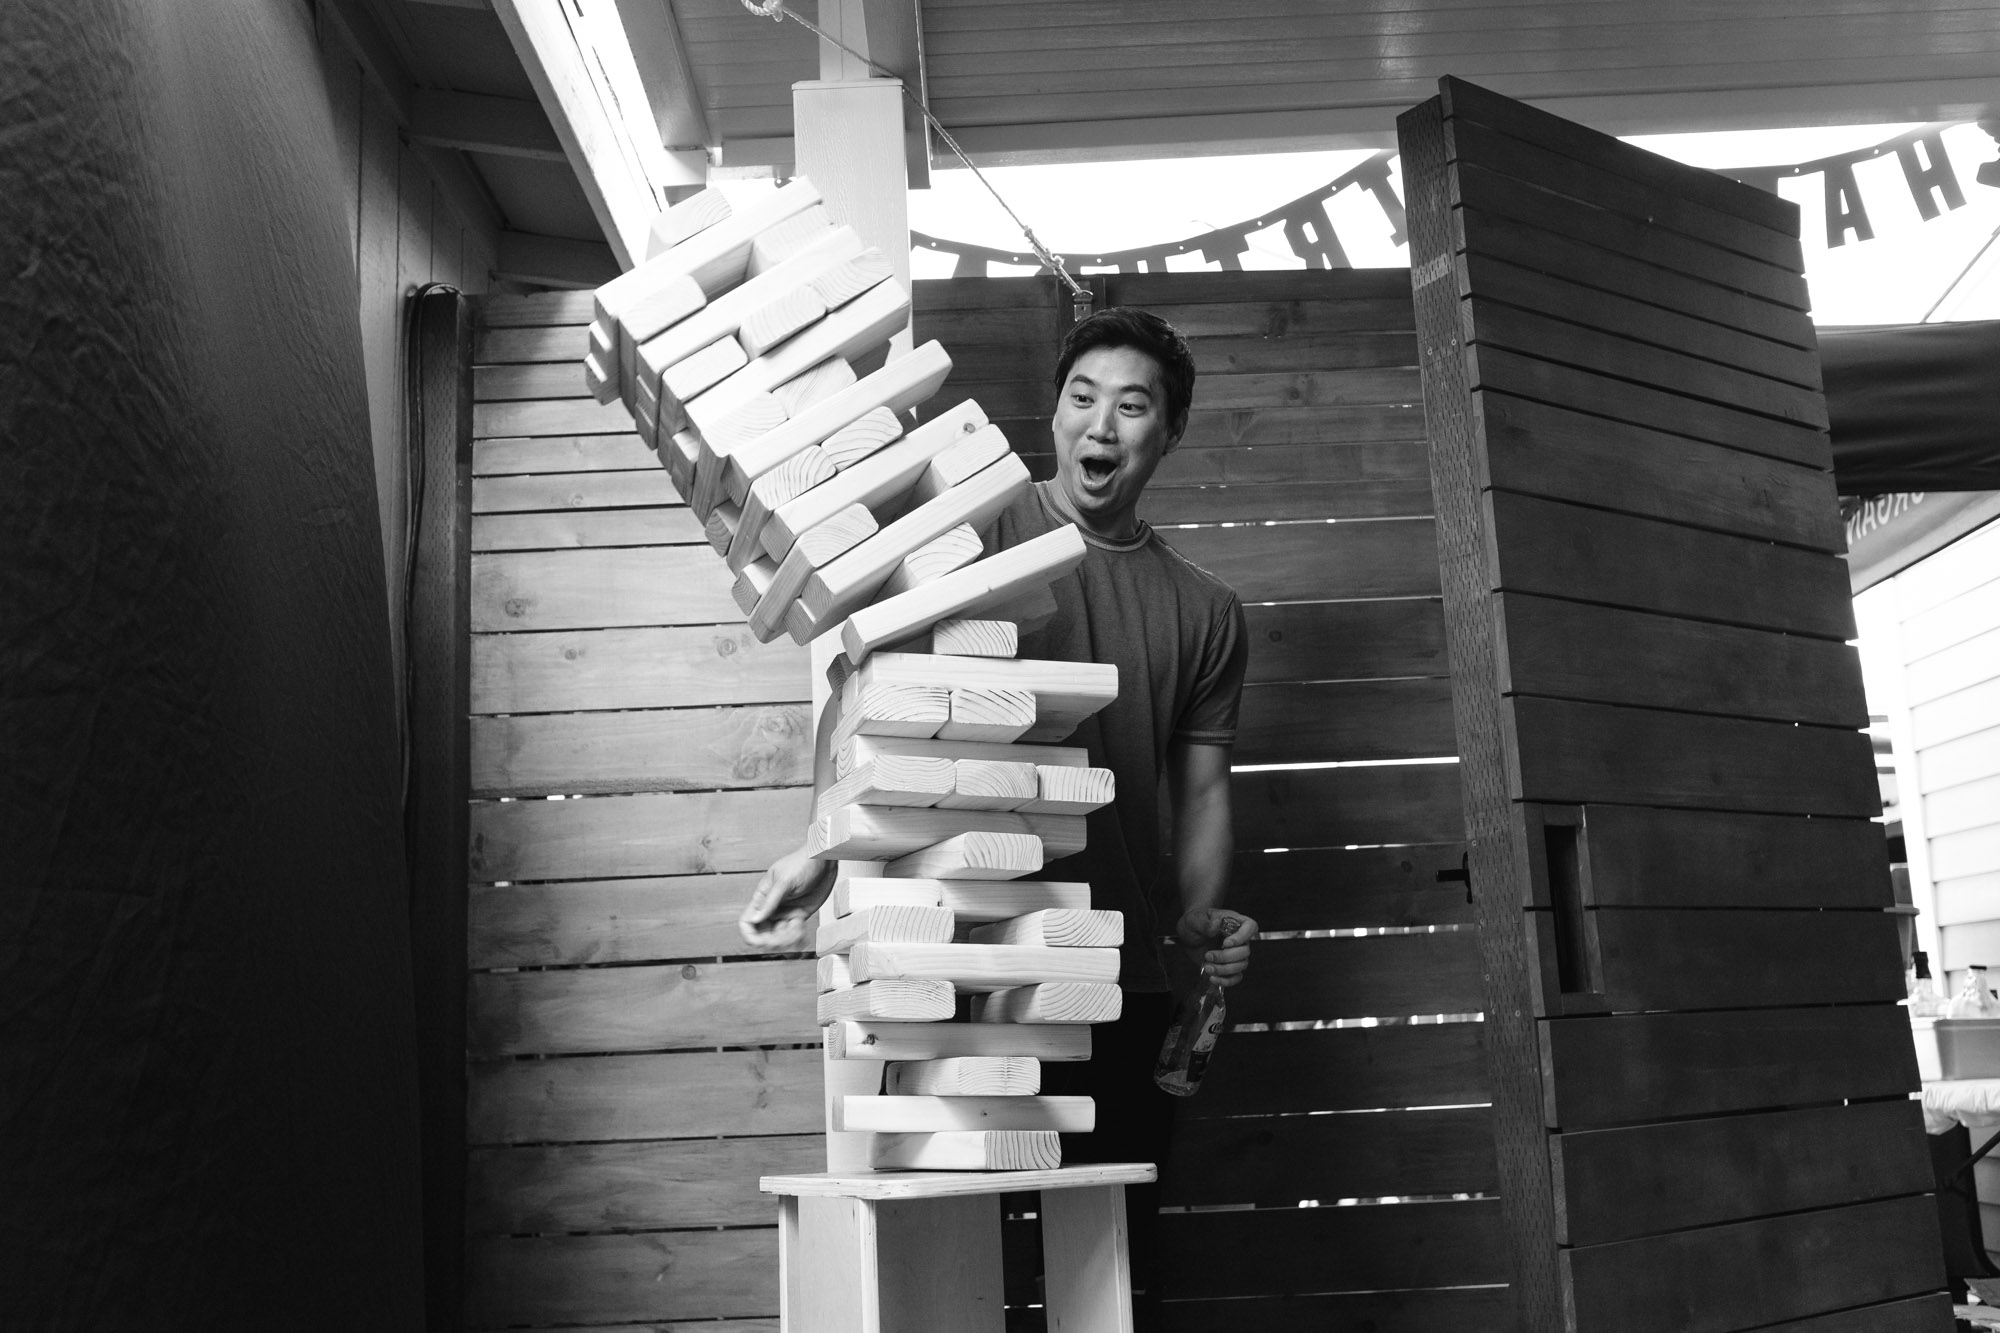 John watching a huge jenga tower fall over.